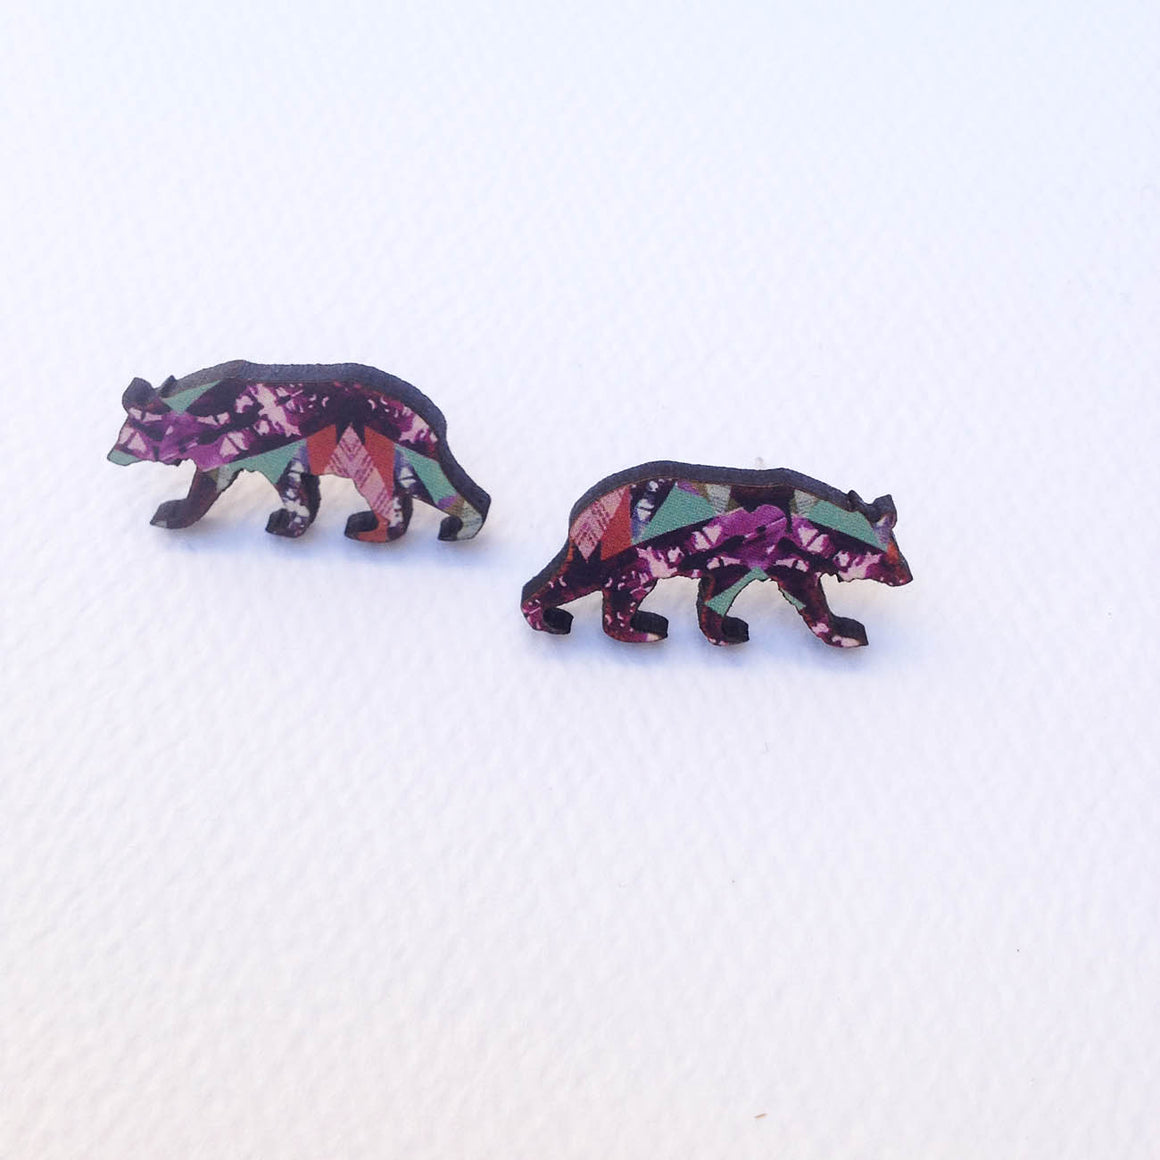 Cute bear stud earrings wooden bear jewellery - Mica Peet